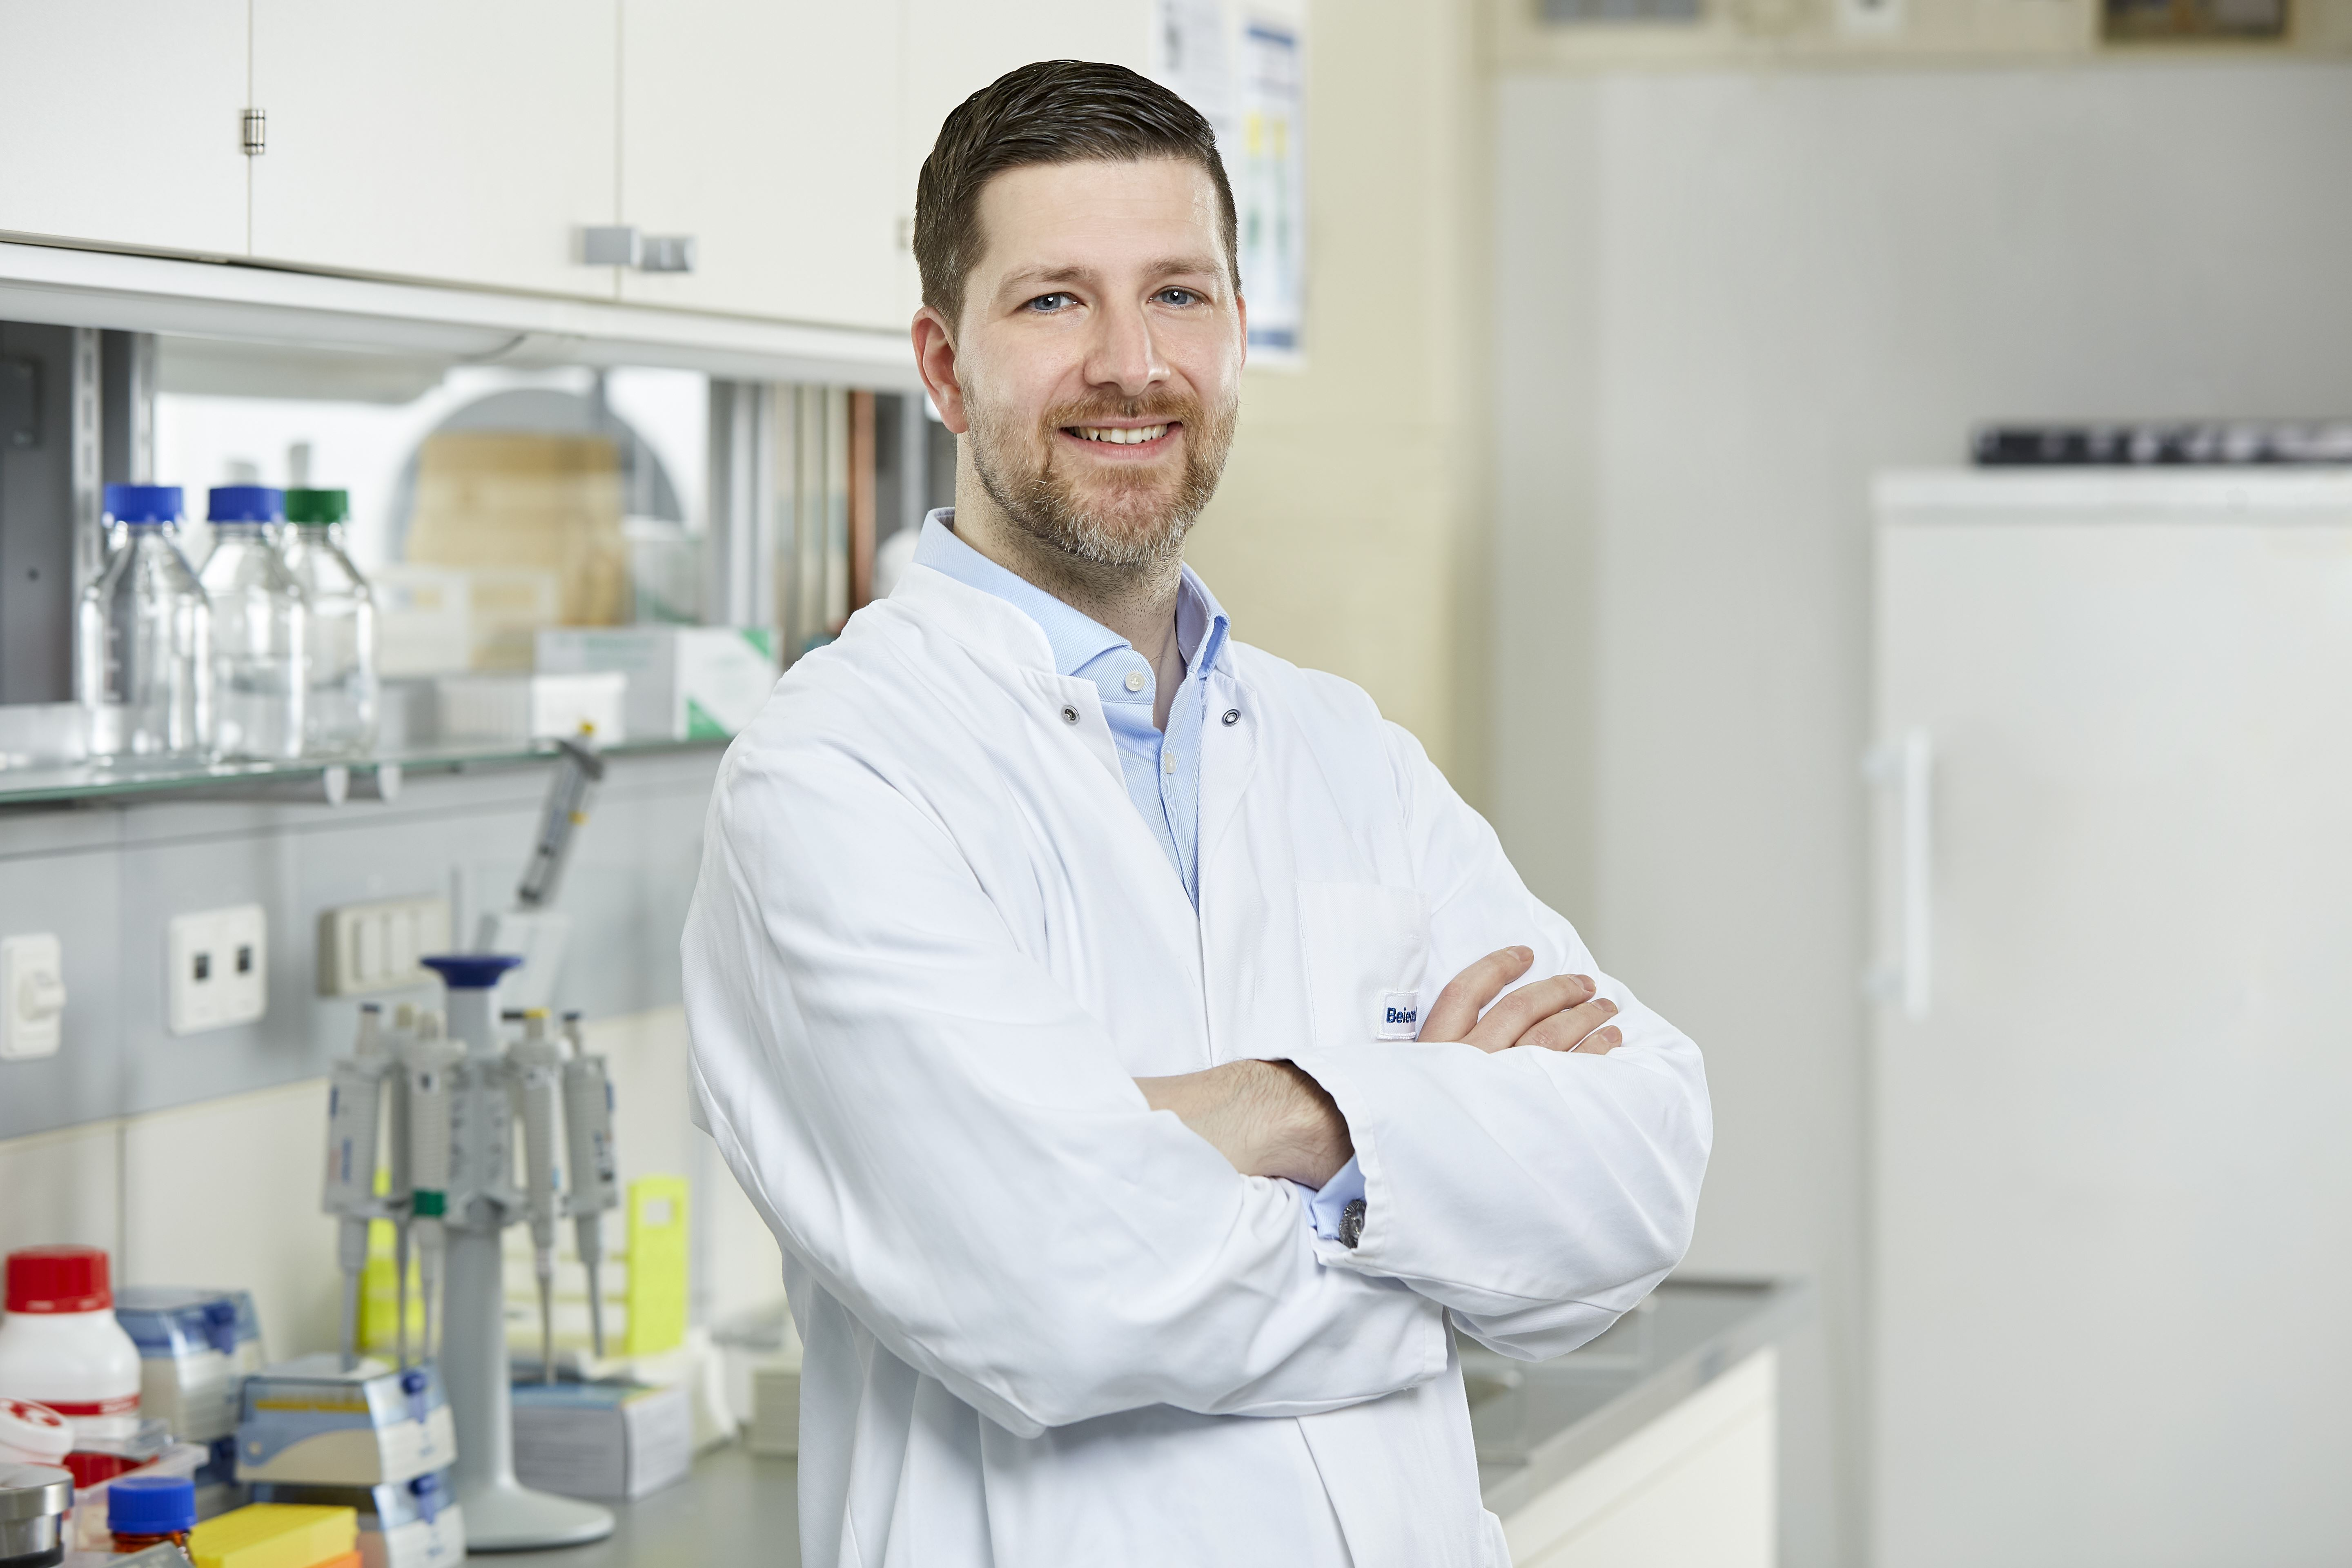 Health Care Lab Manager Simon Van Leeuwen in the lab